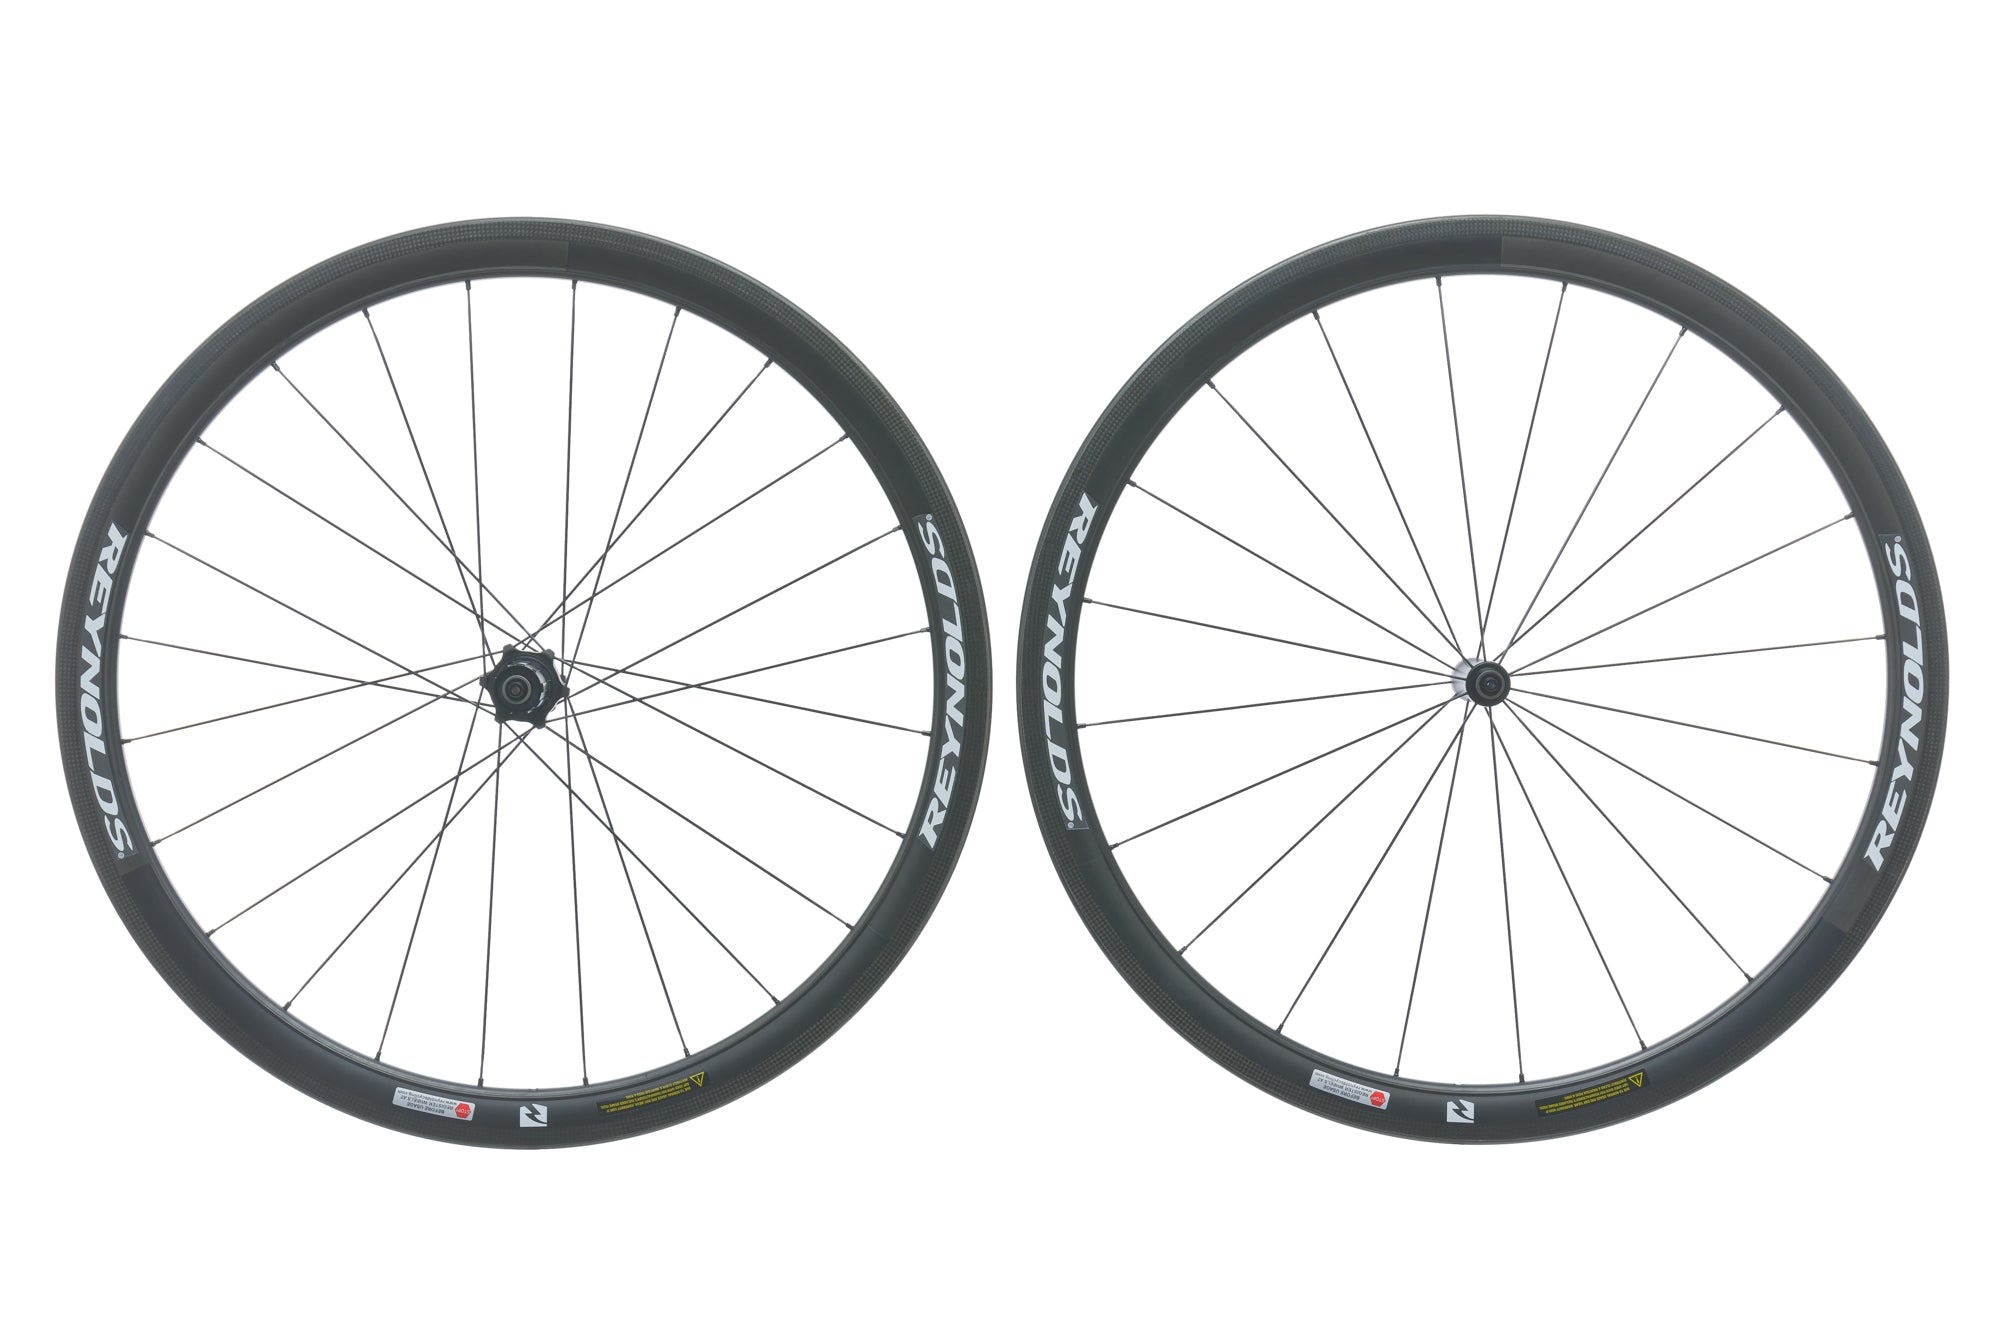 Reynolds Assault Carbon Clincher 700c Wheelset non-drive side